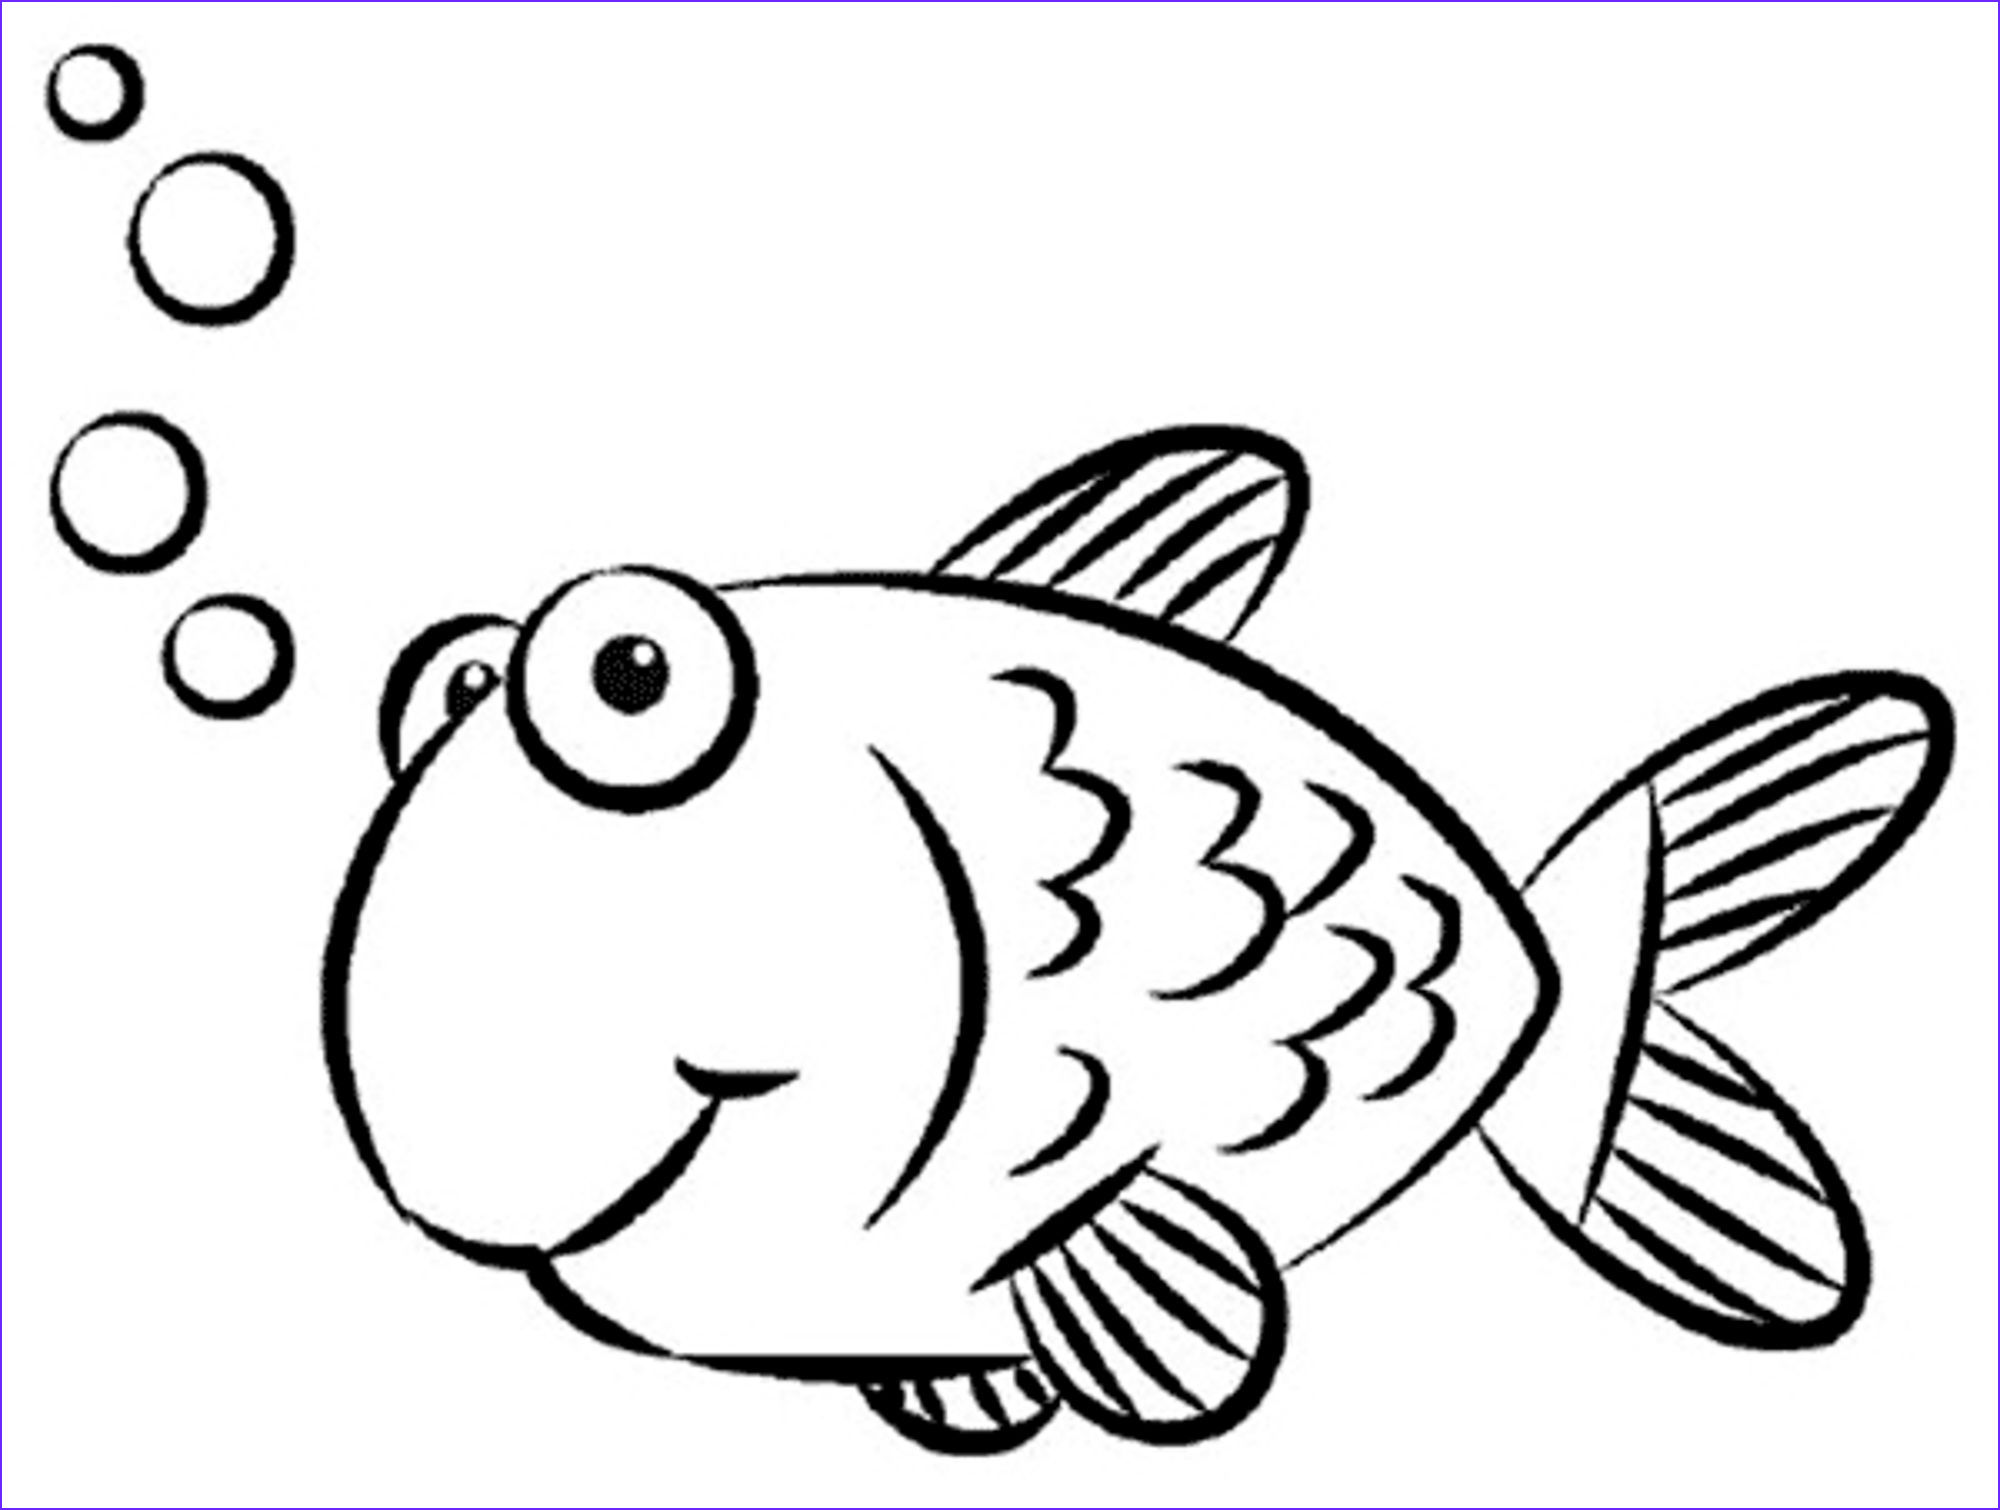 simple fish drawing for kids